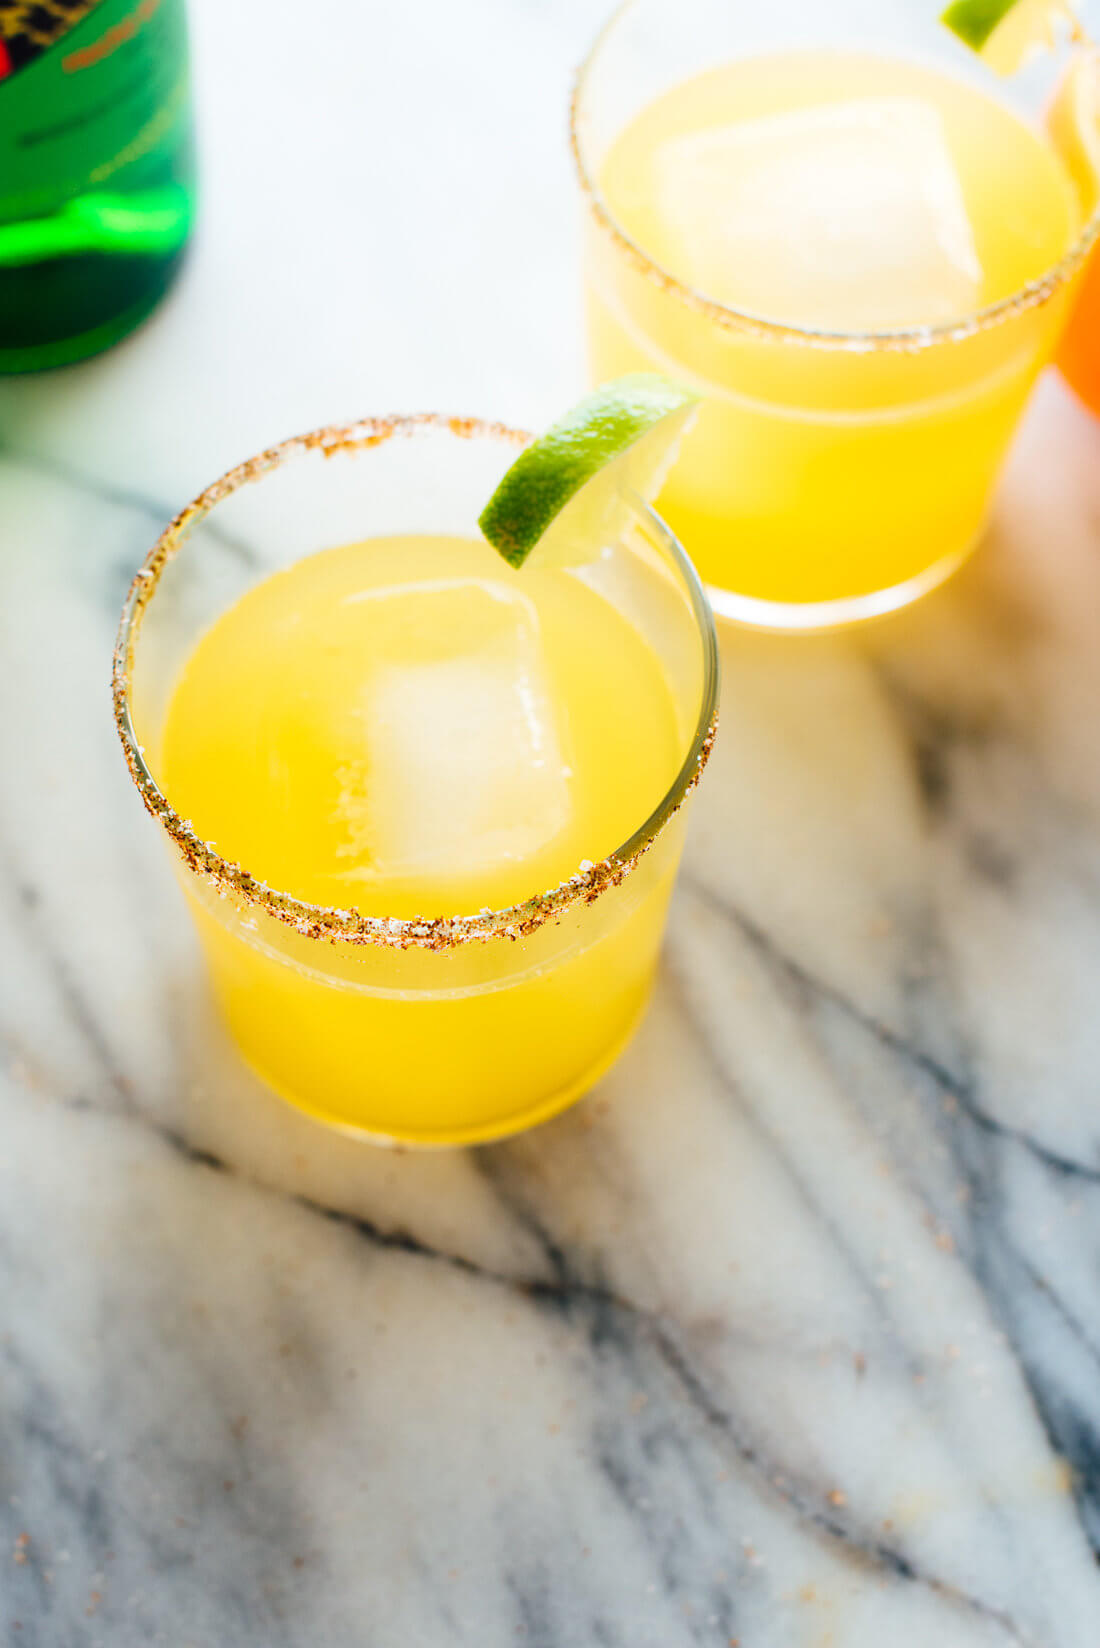 Delicious, fresh mezcalita recipe made with fresh orange and lime juices! Get this #cocktail #recipe at cookieandkate.com